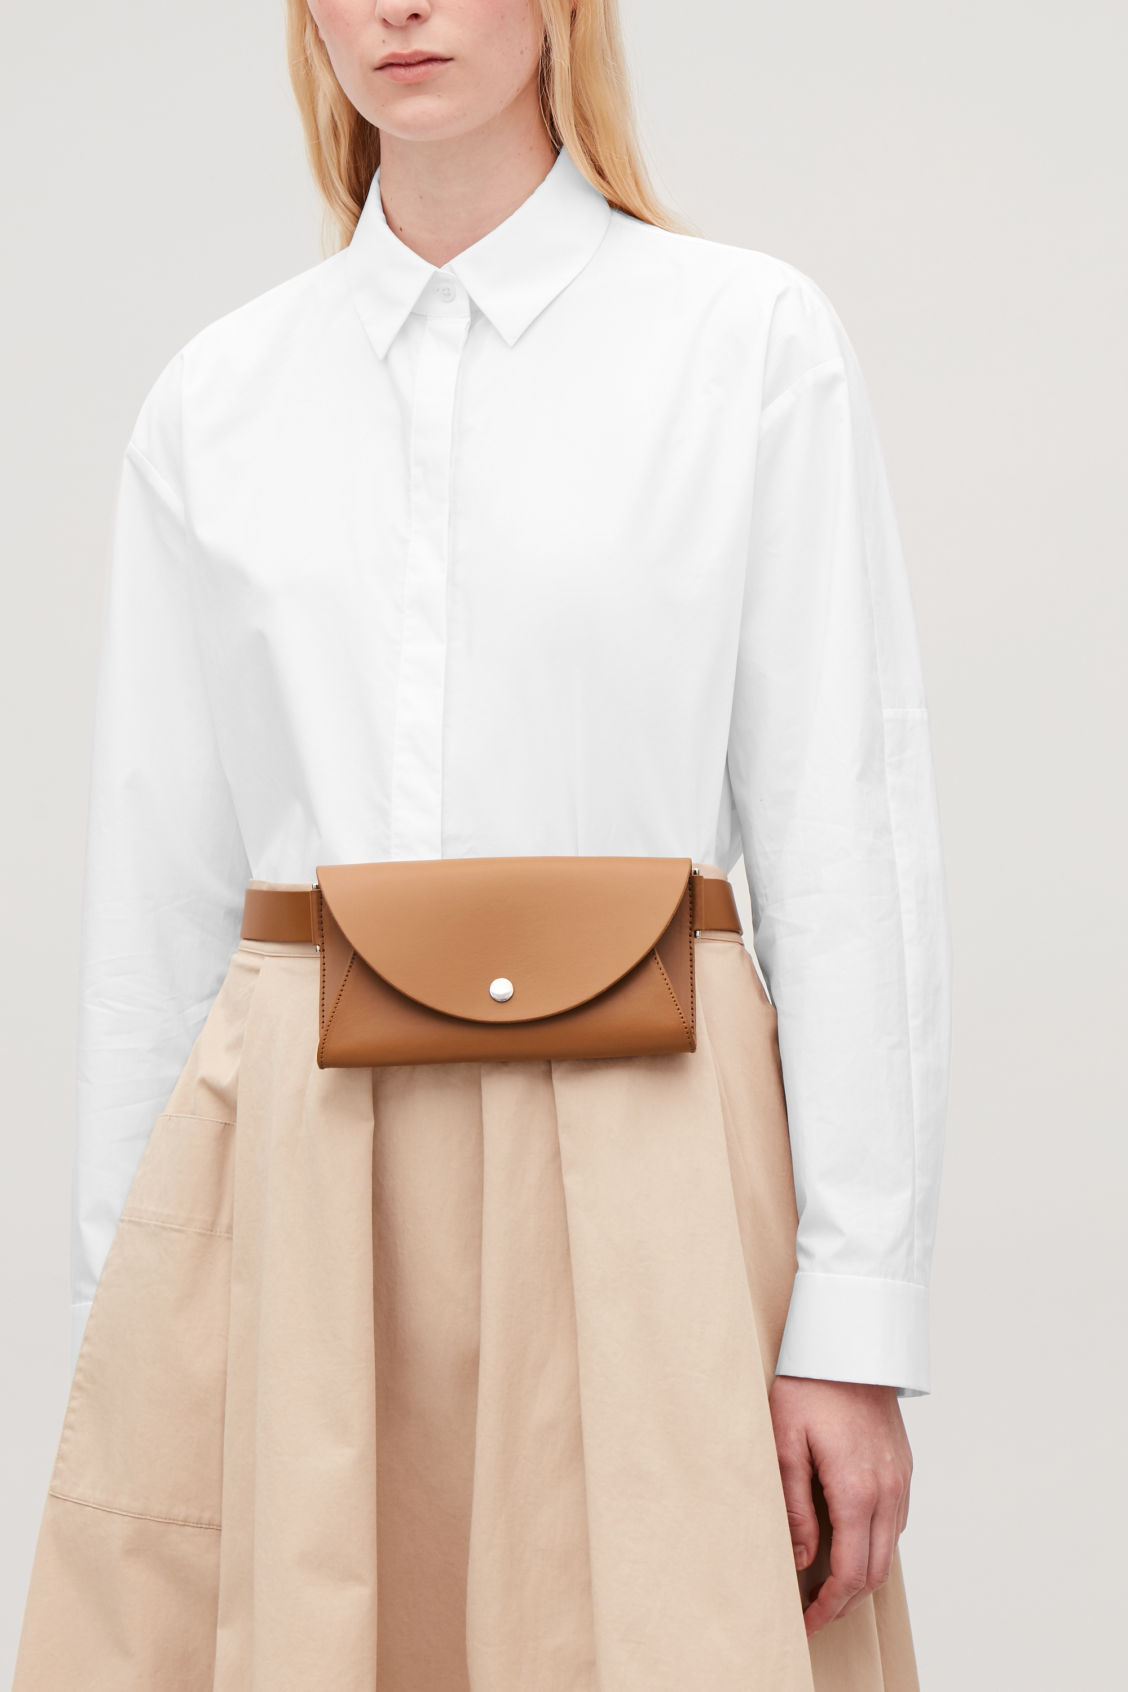 Detailed image of Cos detachable leather belt bag in beige